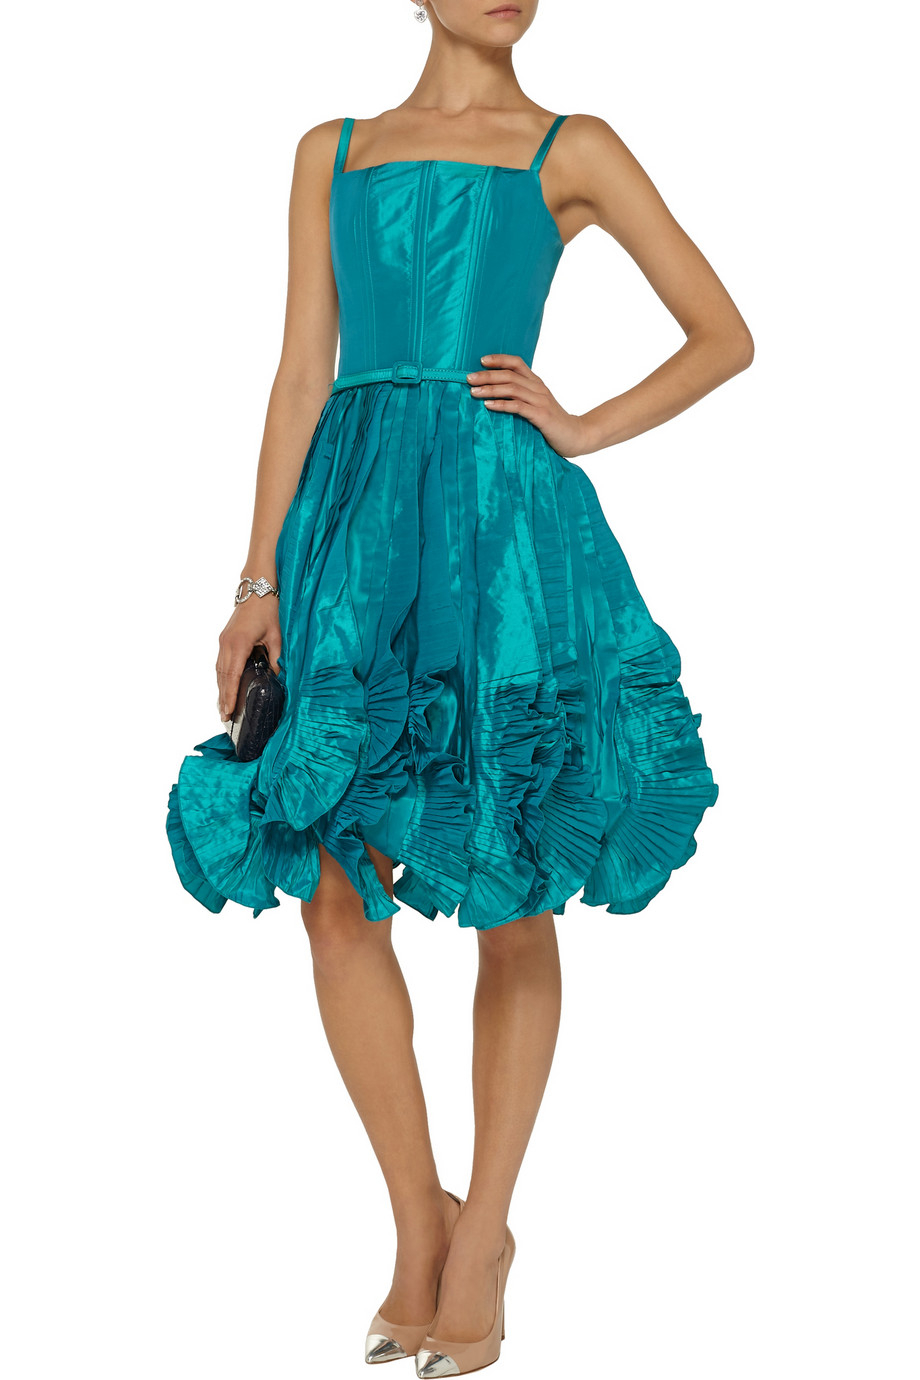 oscar de la renta ruffled silk satin mini dress in teal lyst. Black Bedroom Furniture Sets. Home Design Ideas